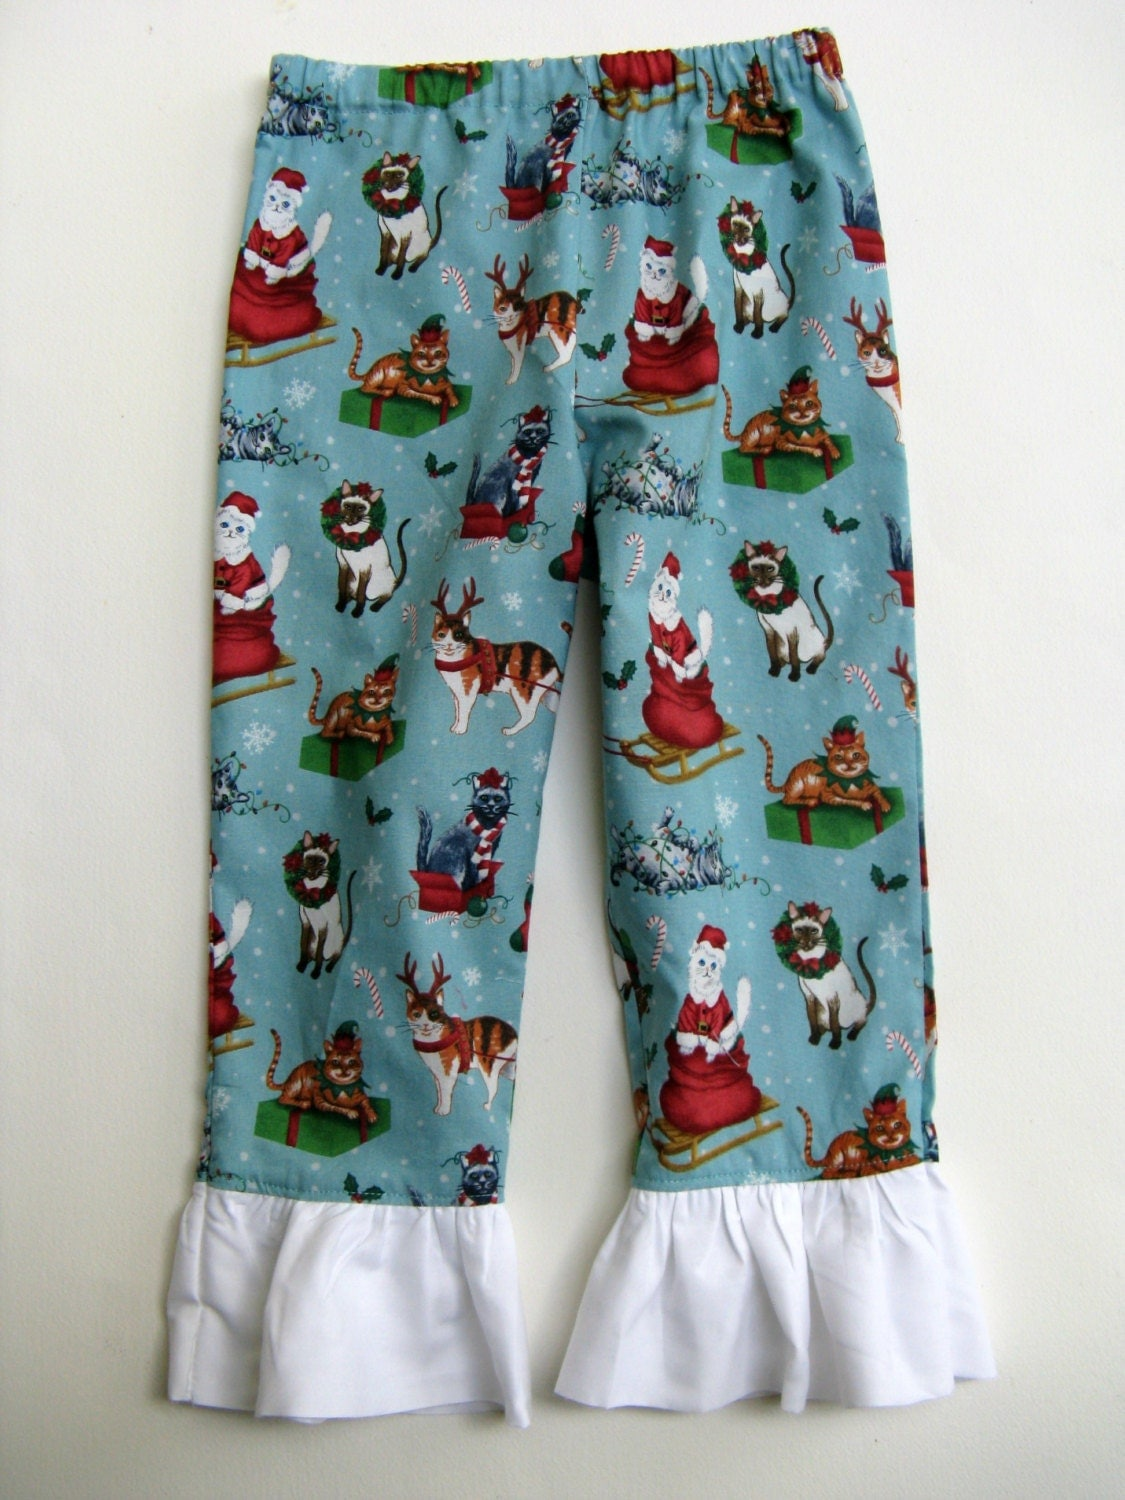 You searched for: christmas pajamas! Etsy is the home to thousands of handmade, vintage, and one-of-a-kind products and gifts related to your search. Christmas Pajamas, Christmas pjs, monogram Christmas pjs, monogram kids pajamas, monogram butt flap pajamas, monogrammed butt flap pjs Organic Cotton Family Christmas Pajamas, Nutcracker.